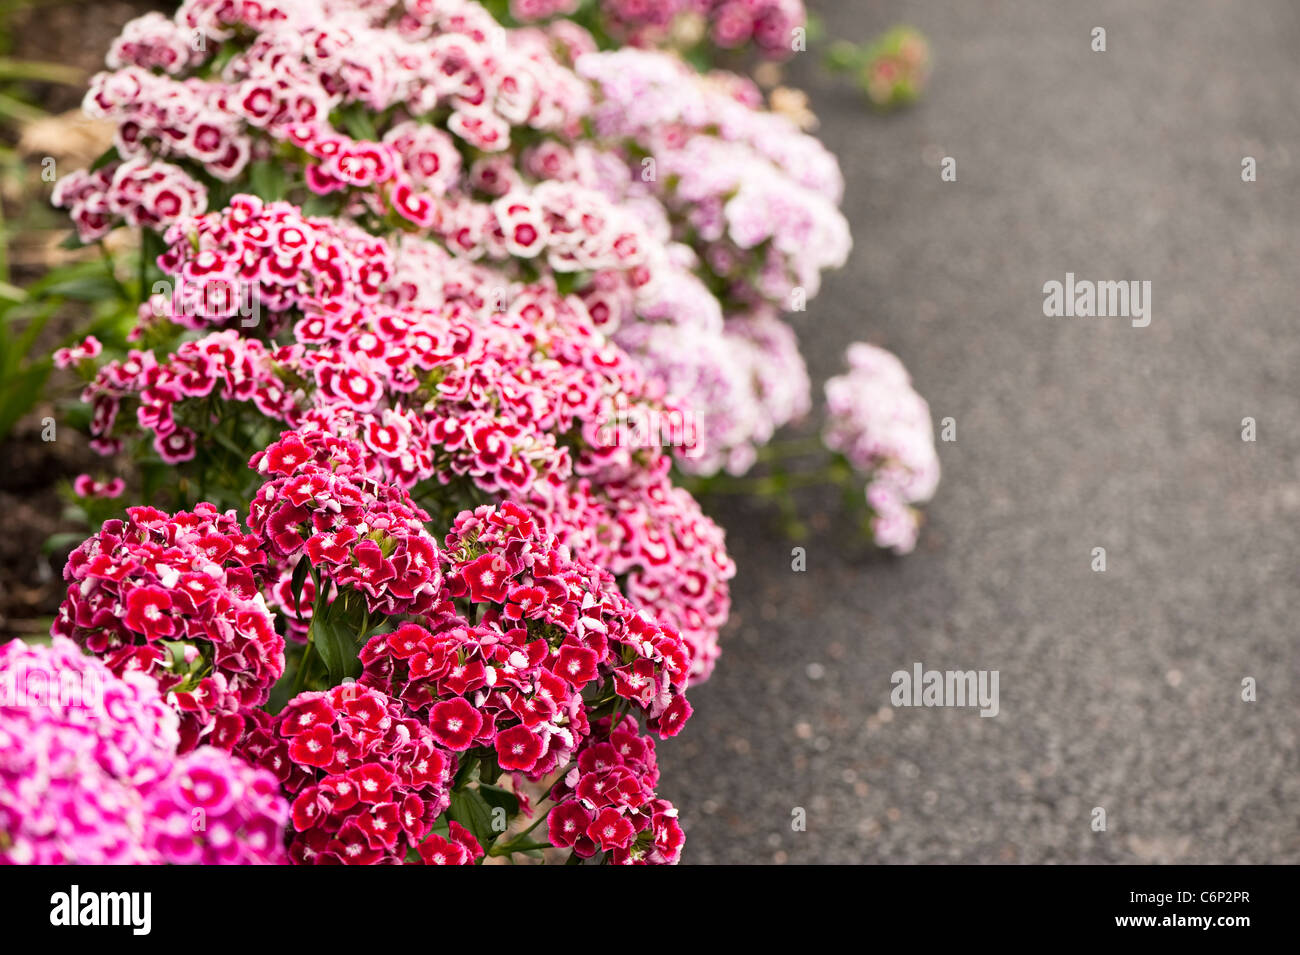 Sweet Williams, Dianthus Barbatus 'Auricula Eyed Mixed', in flower - Stock Image